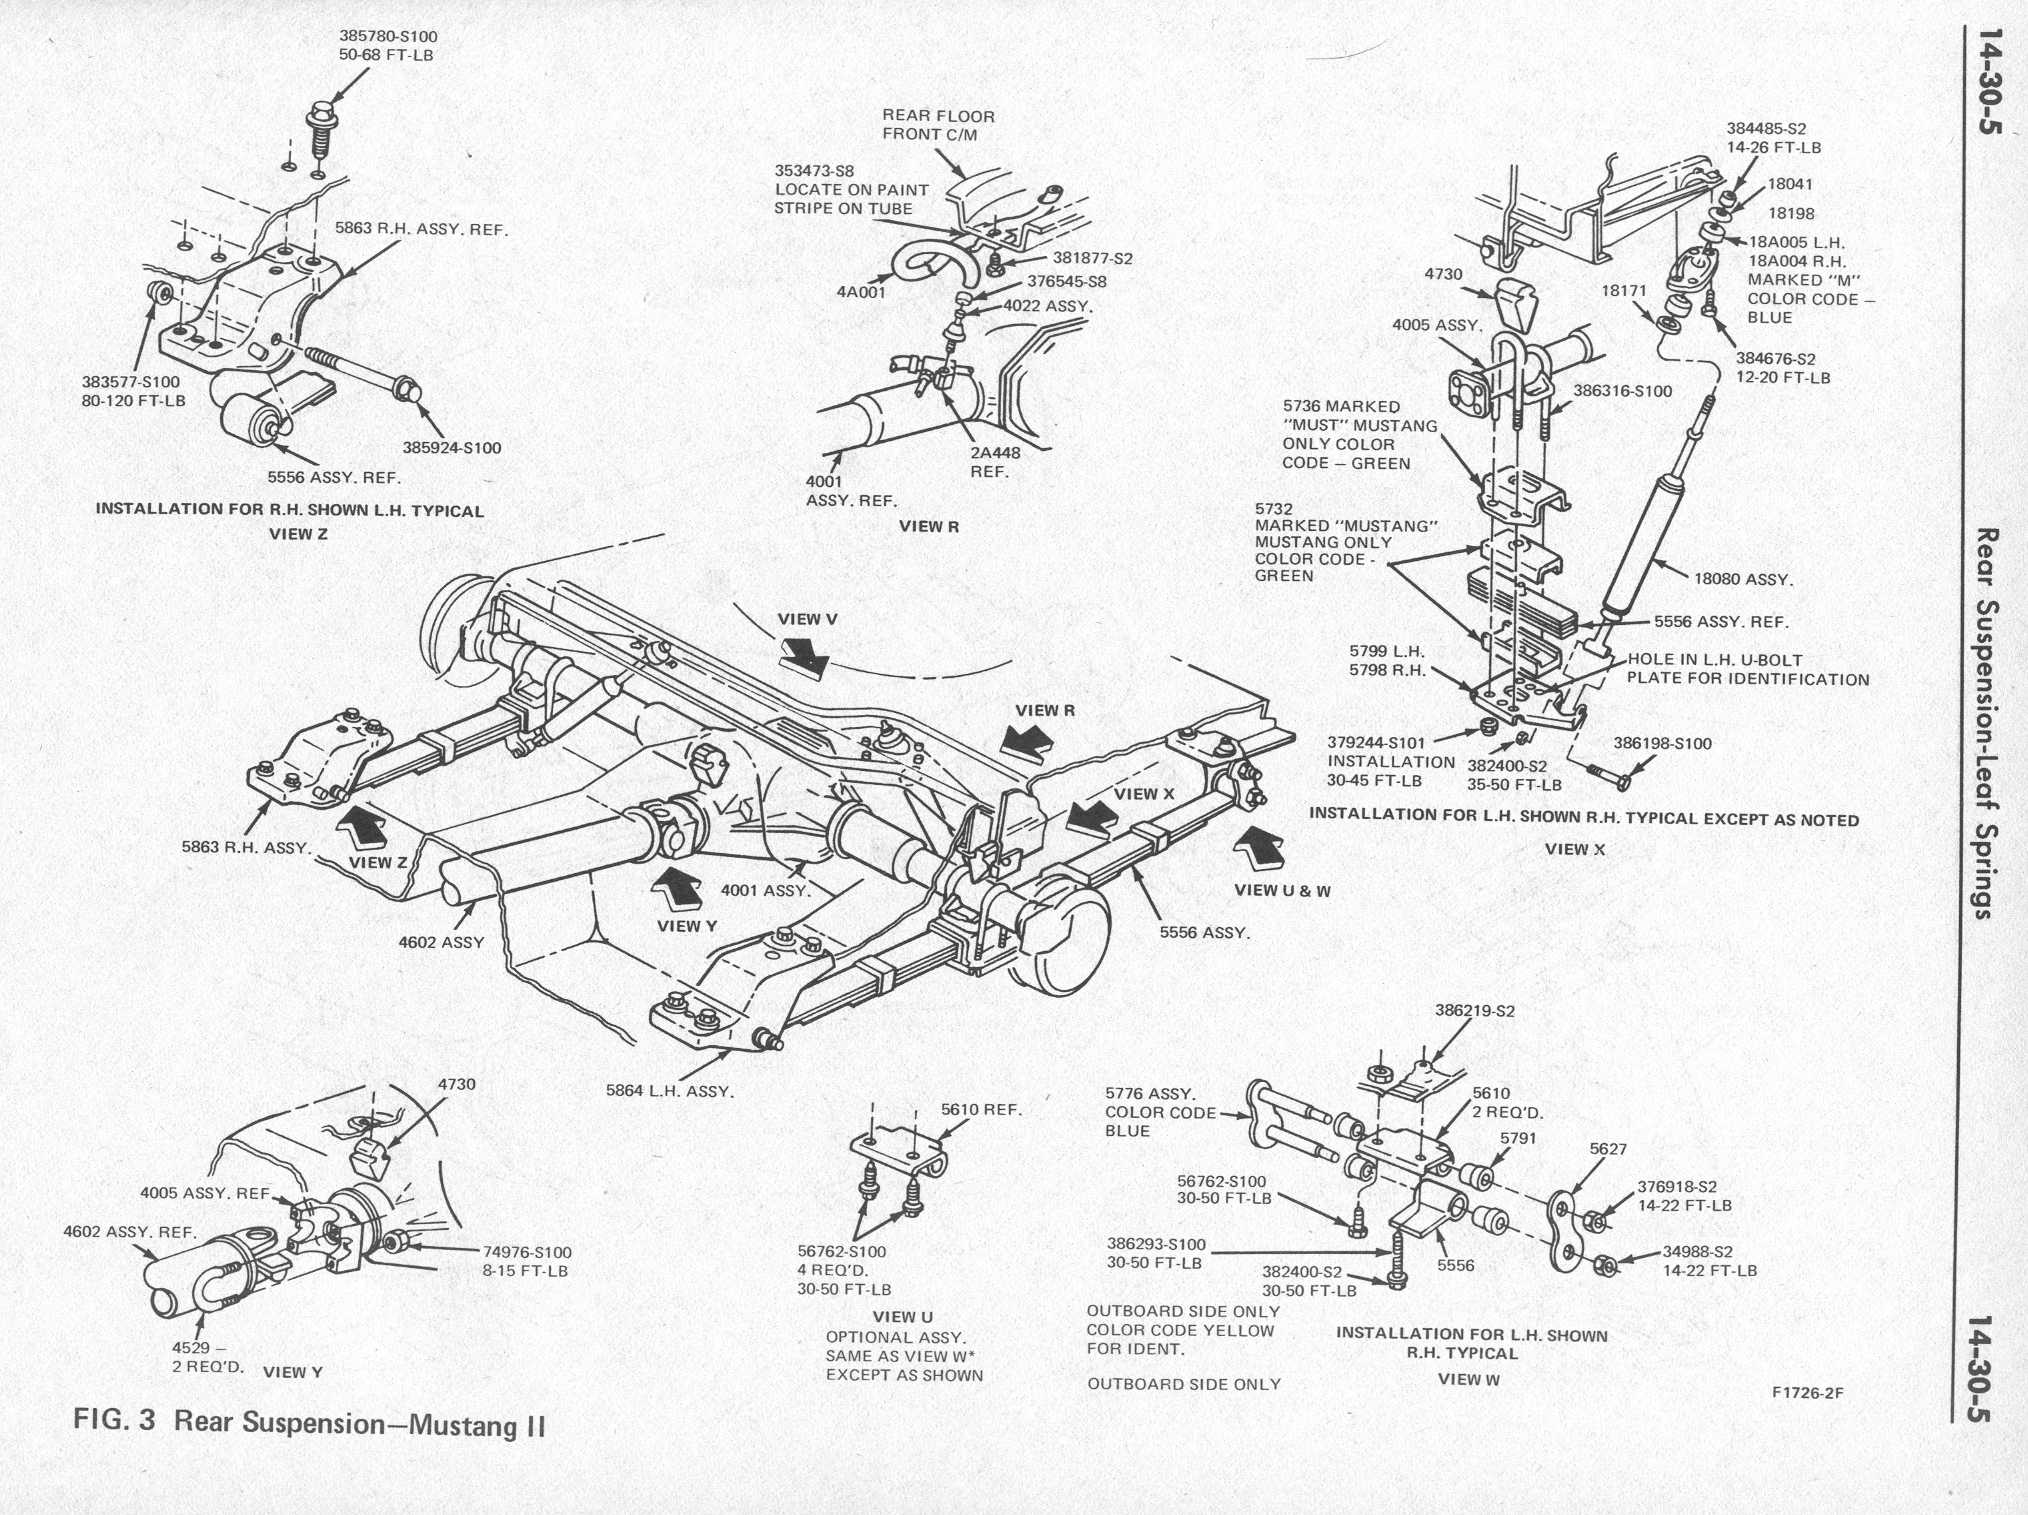 2001 ford f250 rear suspension diagram